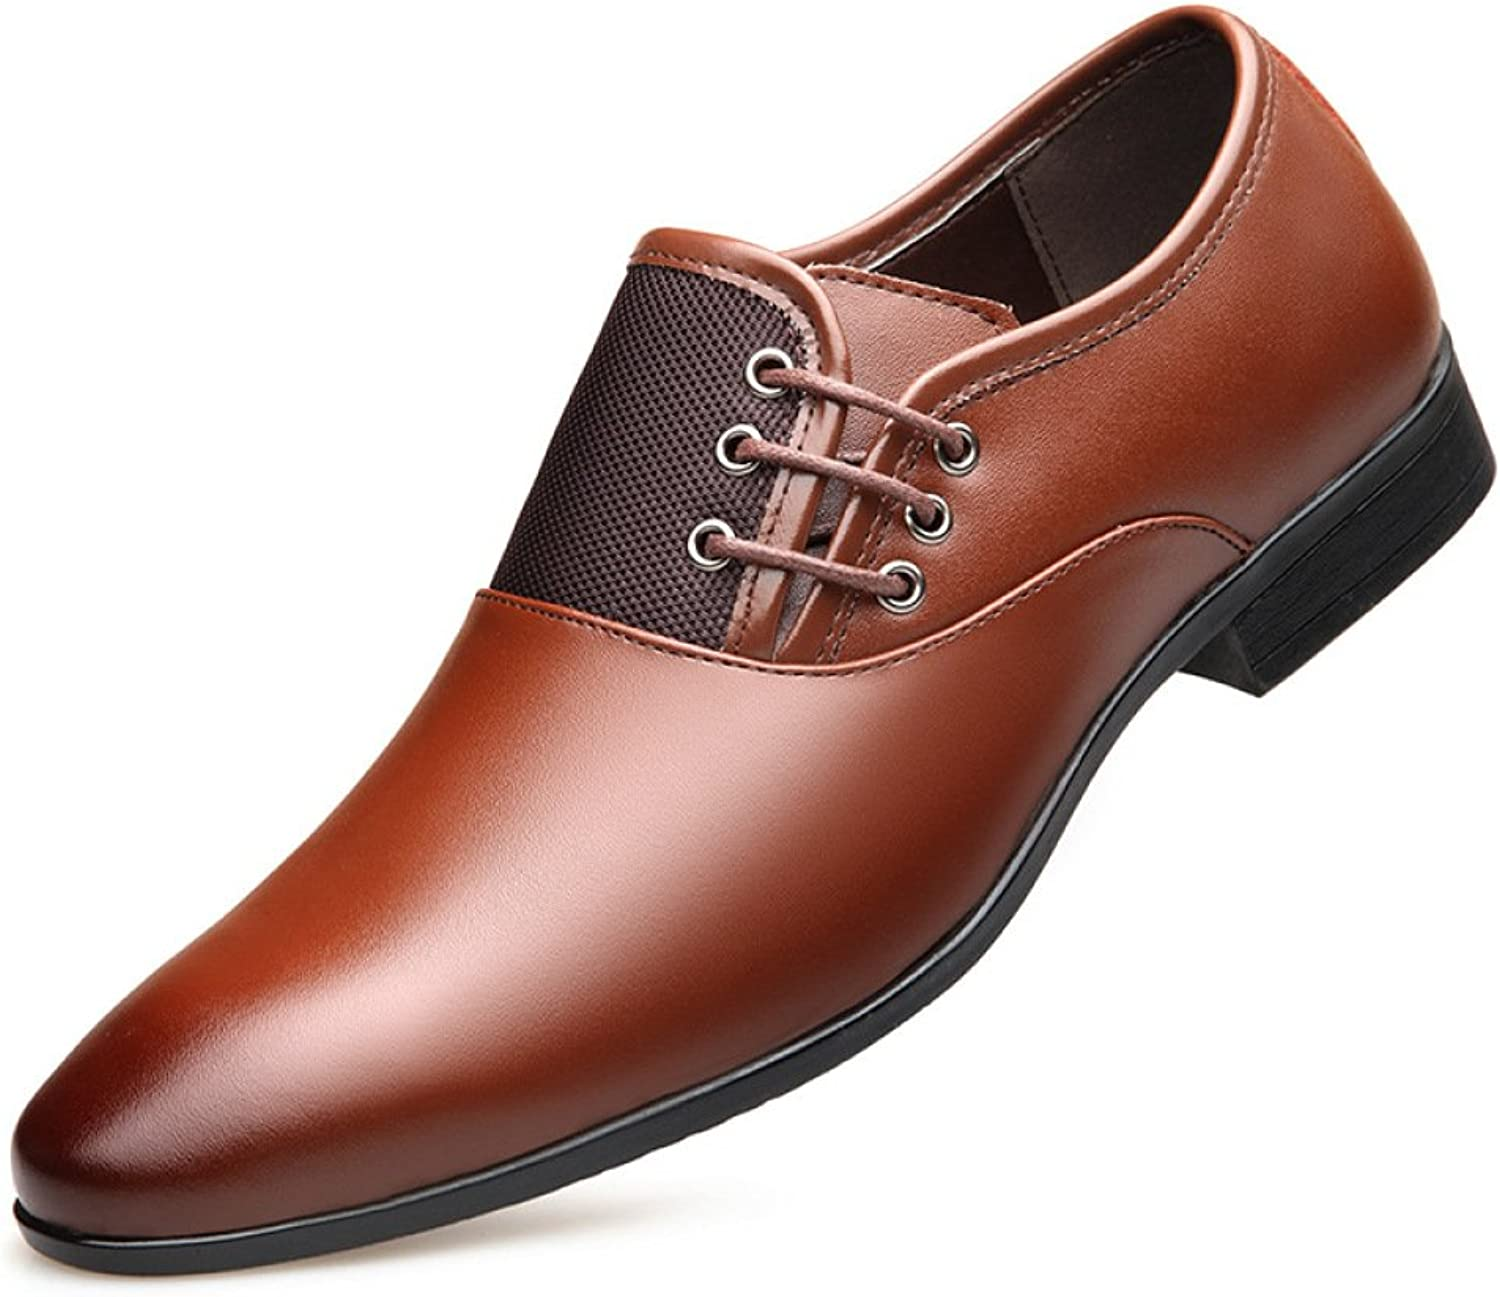 GTYMFH Men's Men's Business Patent Leather Leather shoes Dress Occupation Wedding shoes